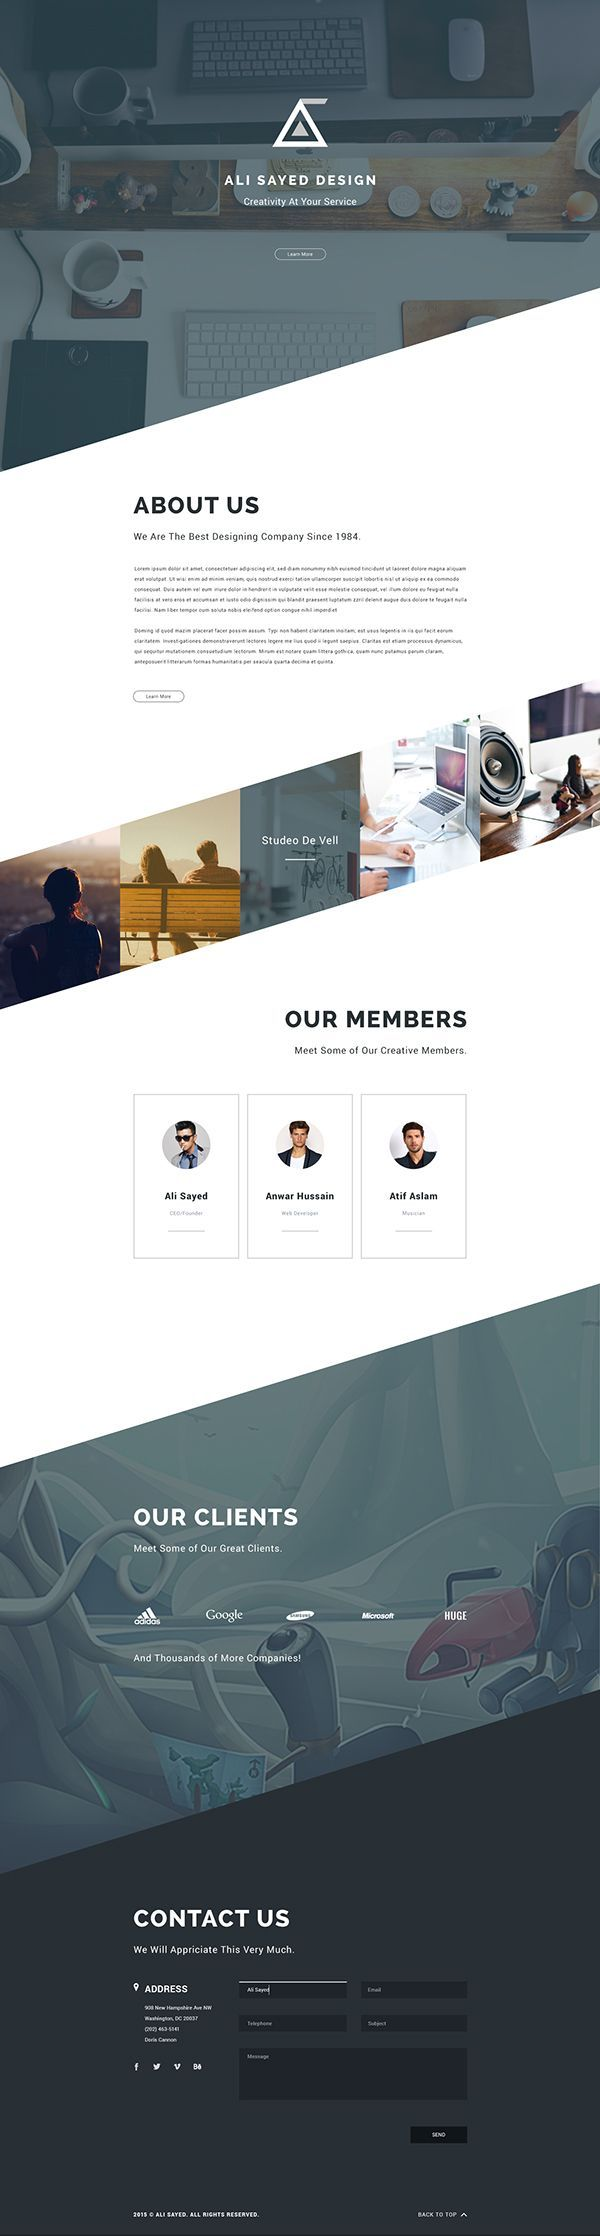 Angle Business Agency Web Template Design on Behance